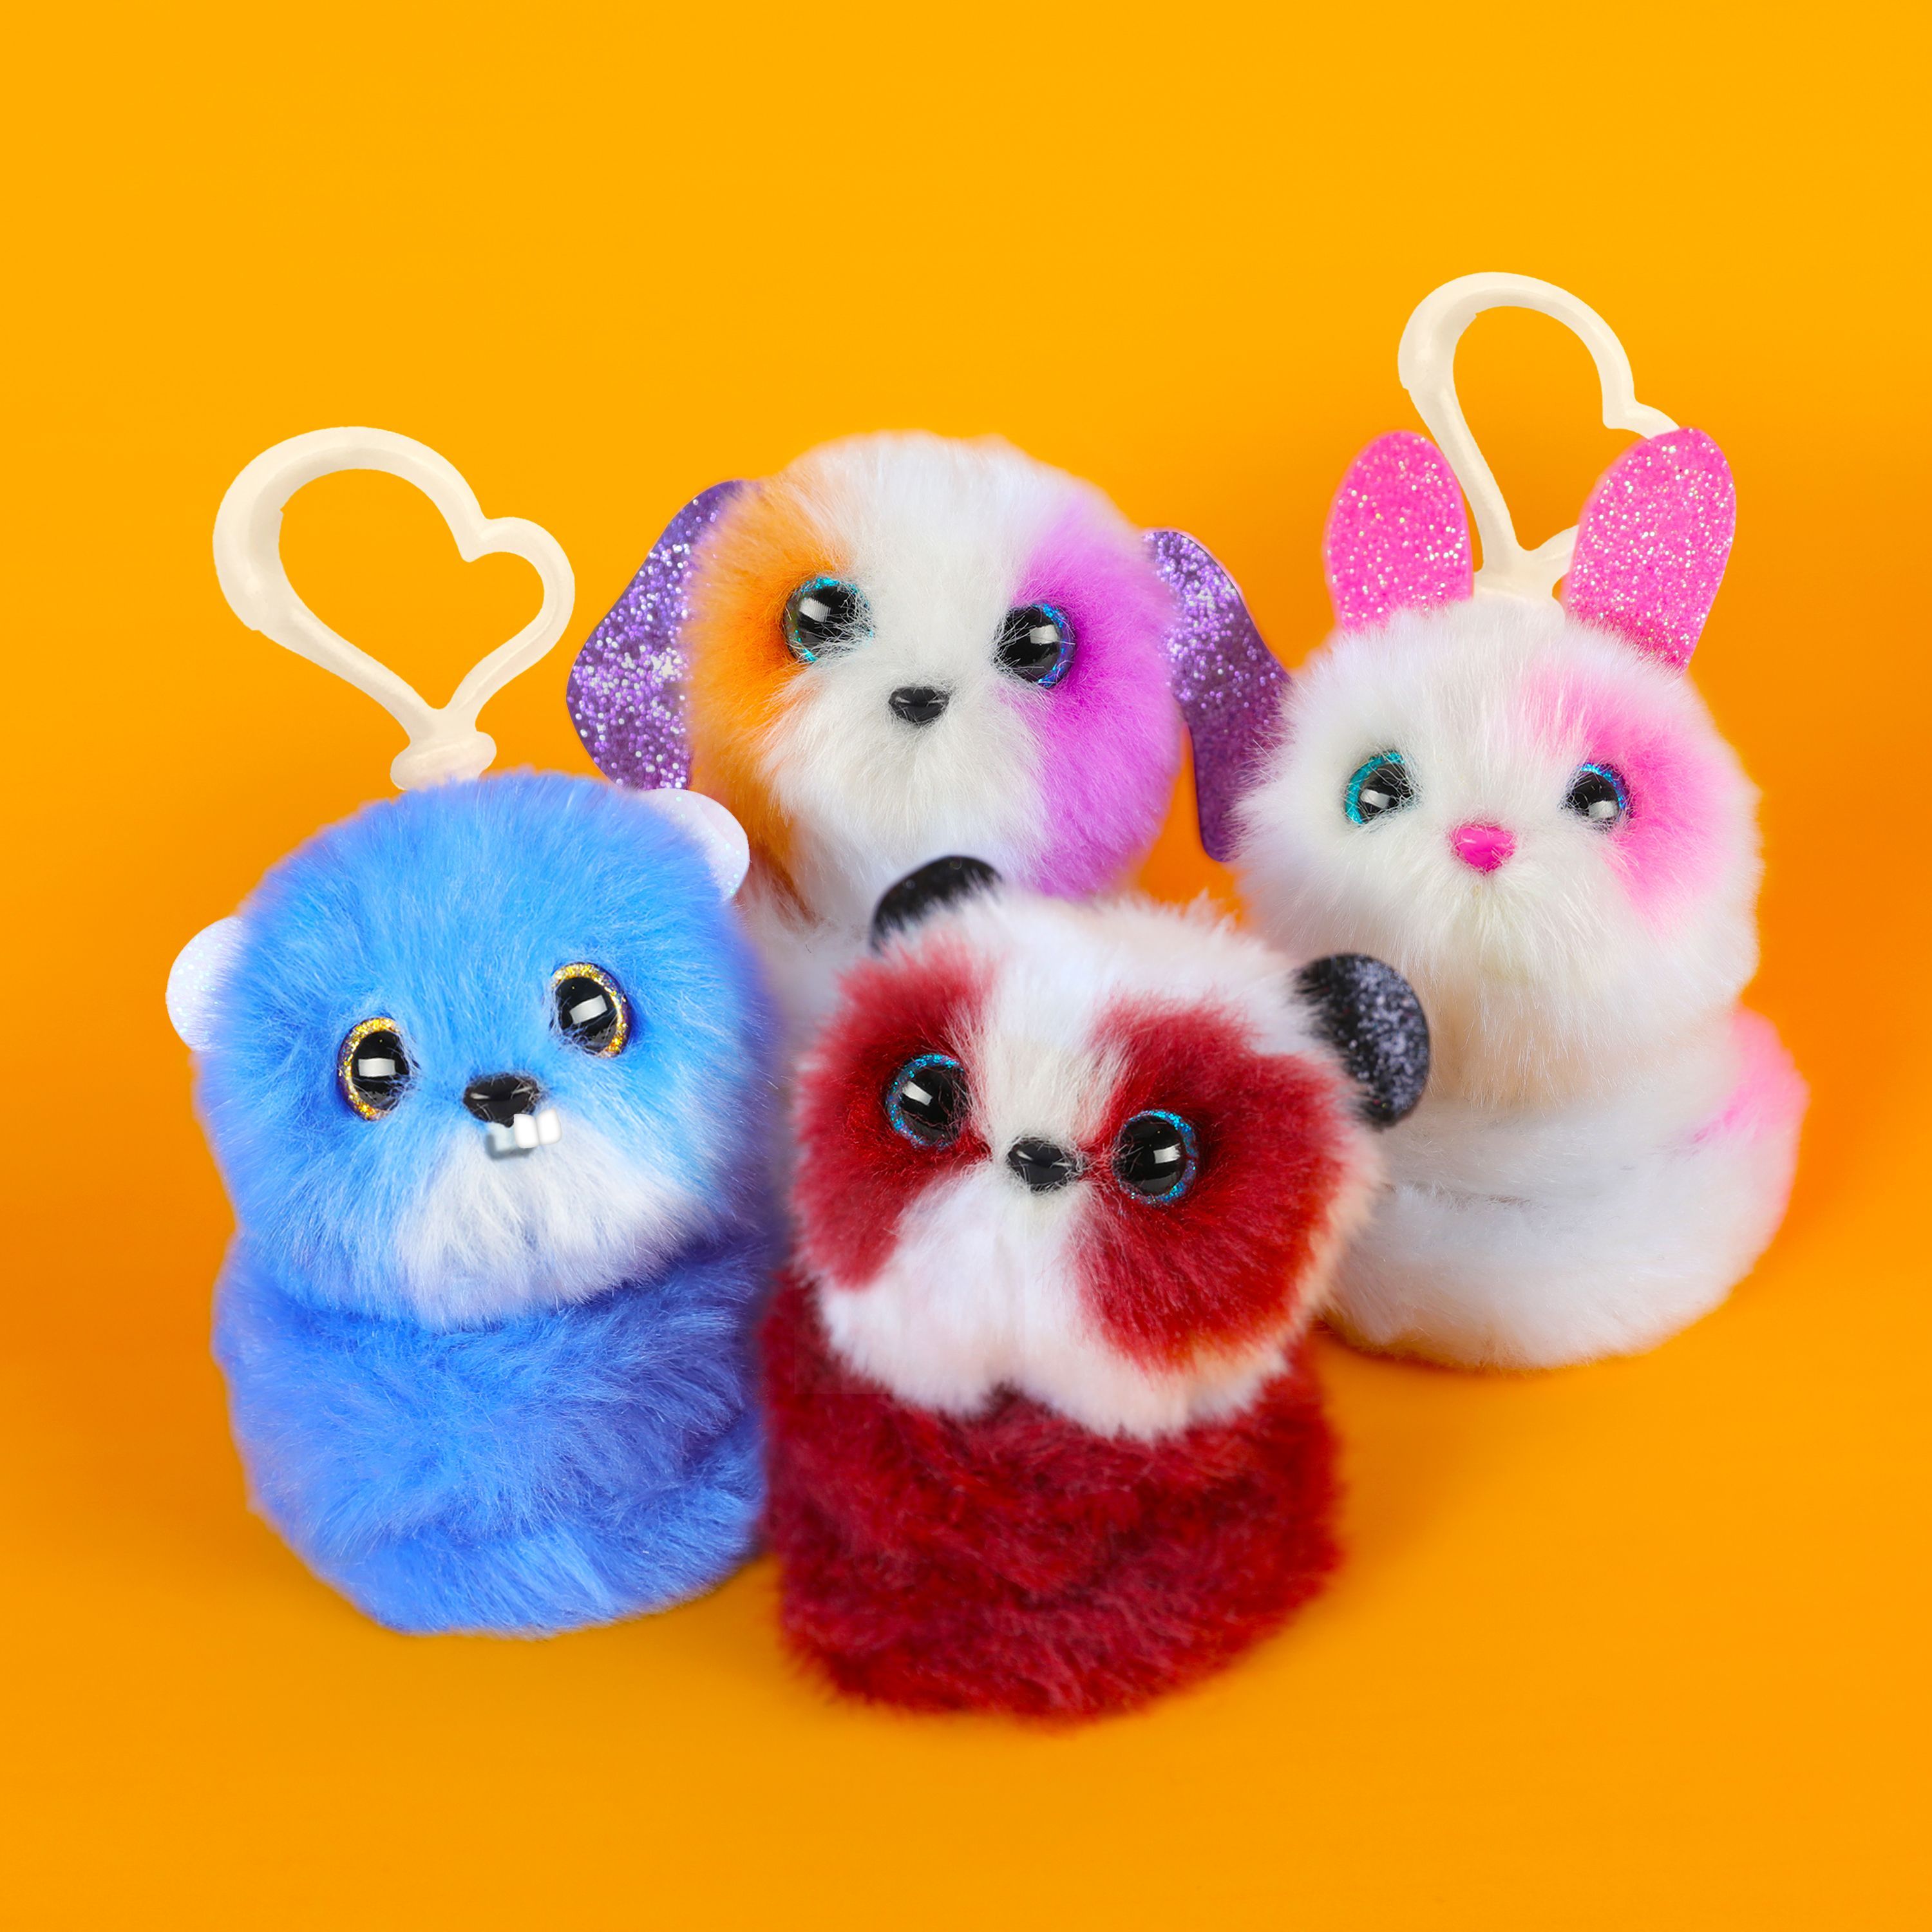 Pomsie Poos 4-Pack Assortment 1